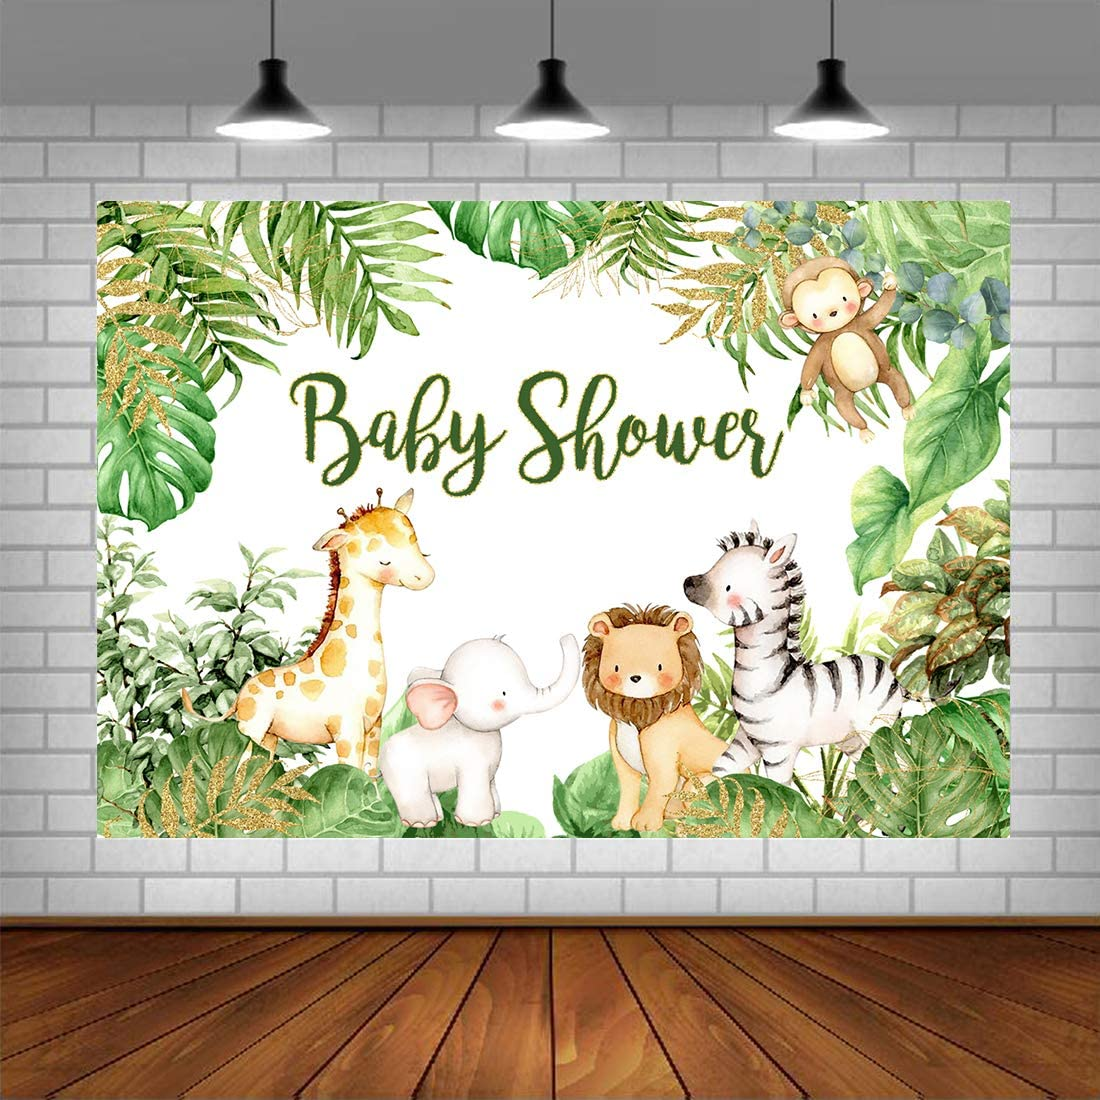 Safari Animals Baby Shower Photogarphy Backdrop Jungle Baby Shower Background Safari Baby Shower Party Banner Decorations for Boy Photo Studio Props 5x3ft